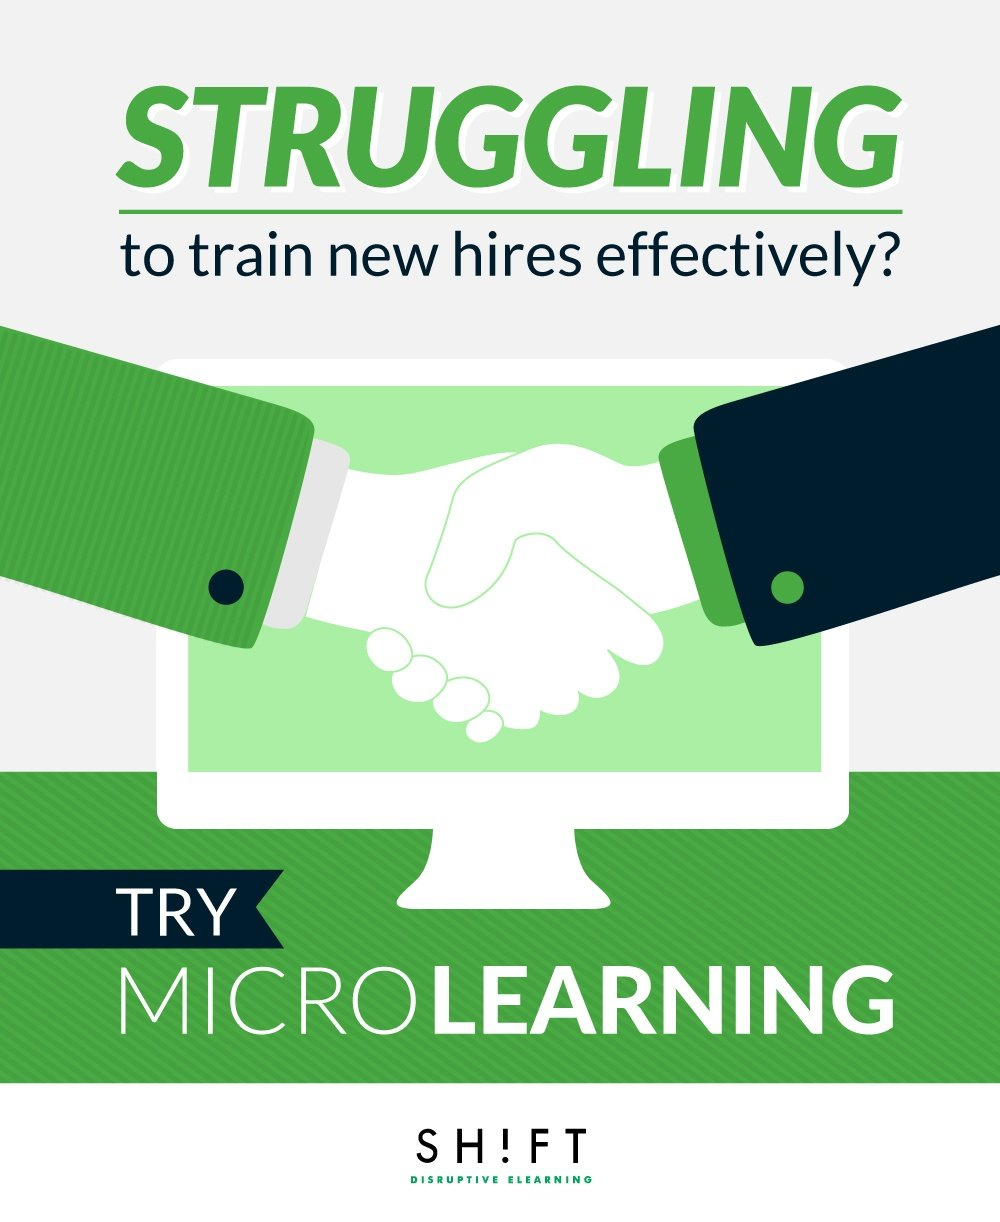 microlearning3.jpg